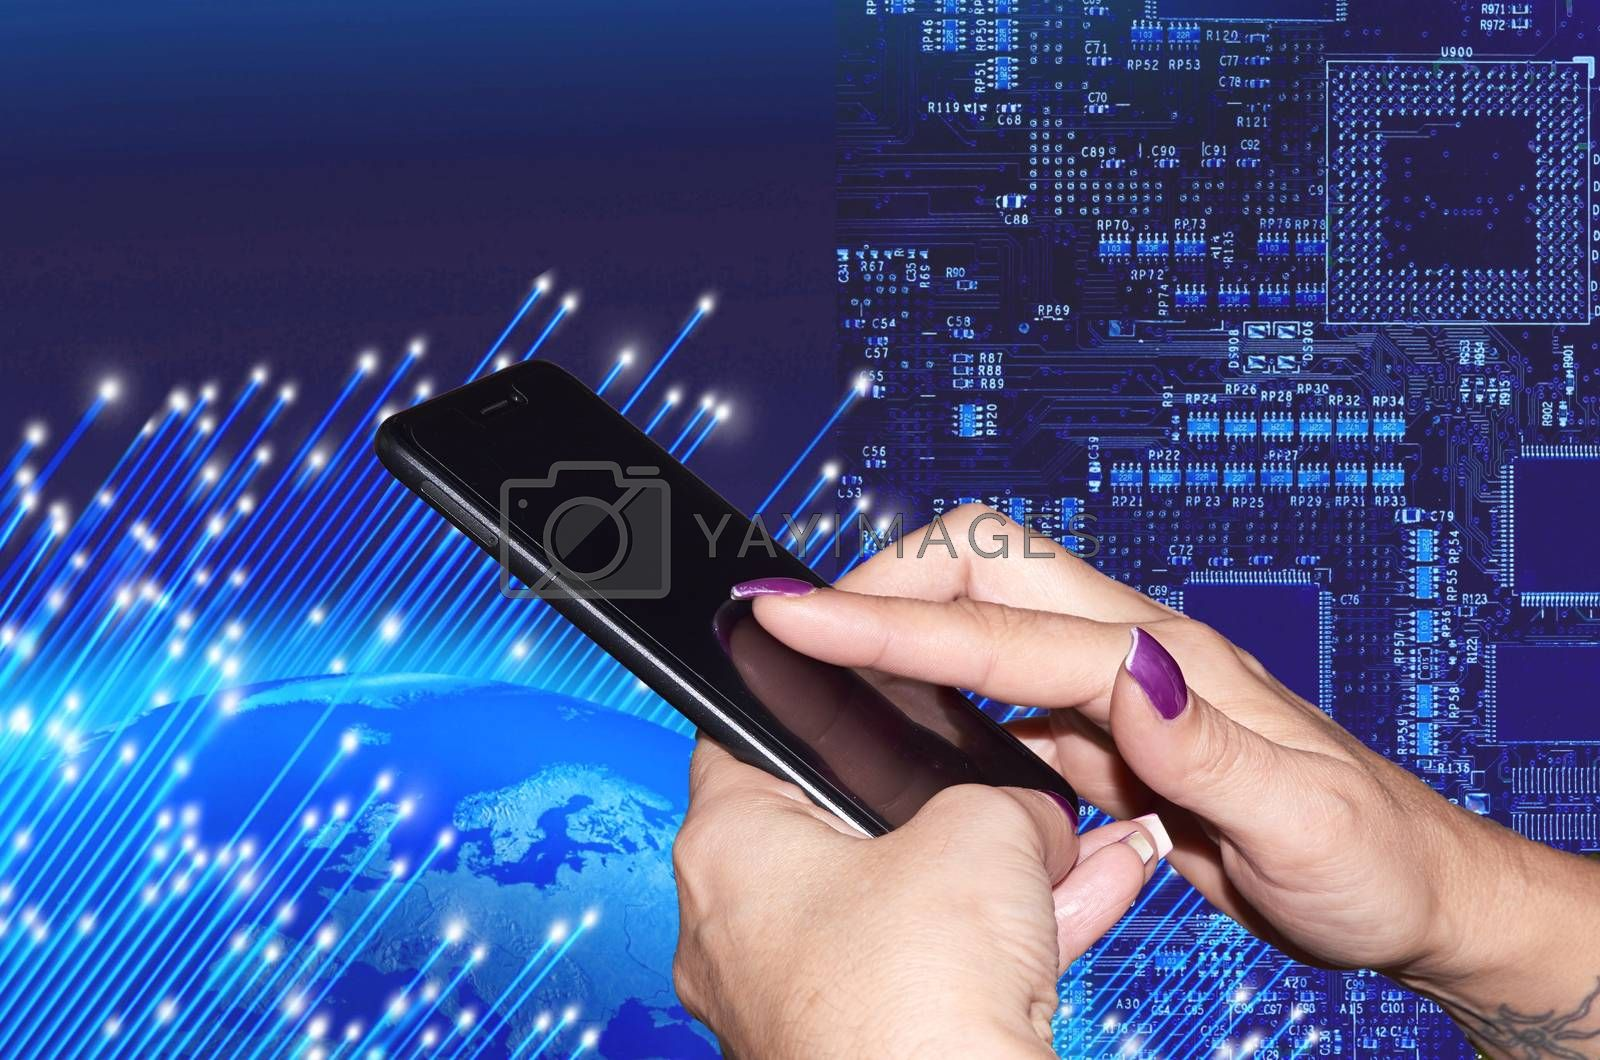 Woman's hands holding a mobile phone world background and circuits